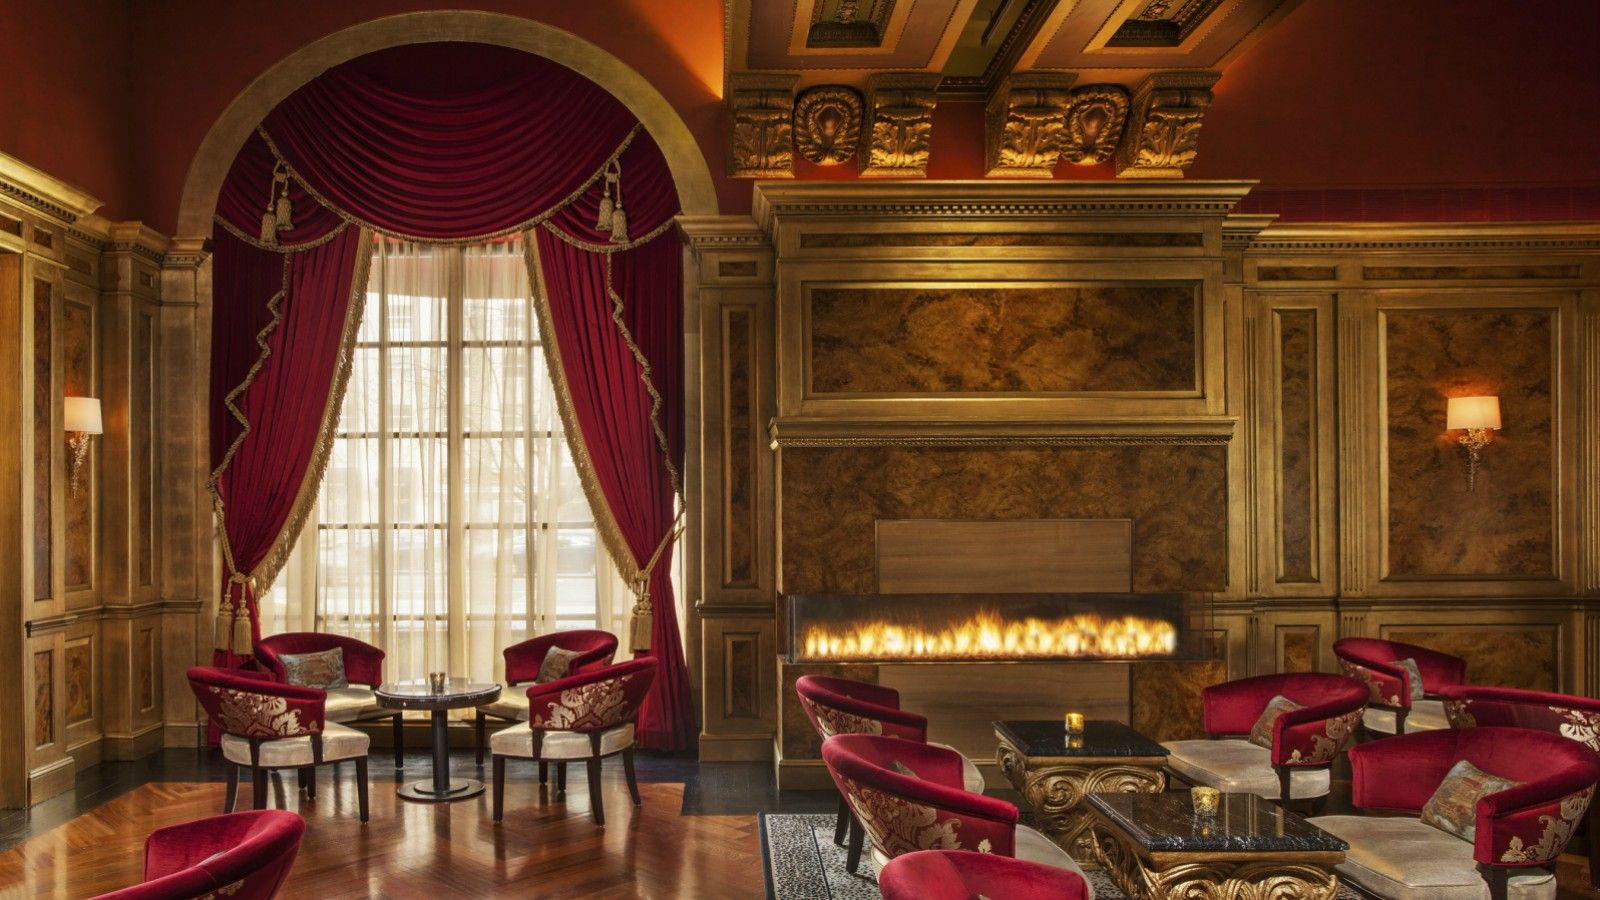 St. Regis Washington, D.C. | Bar